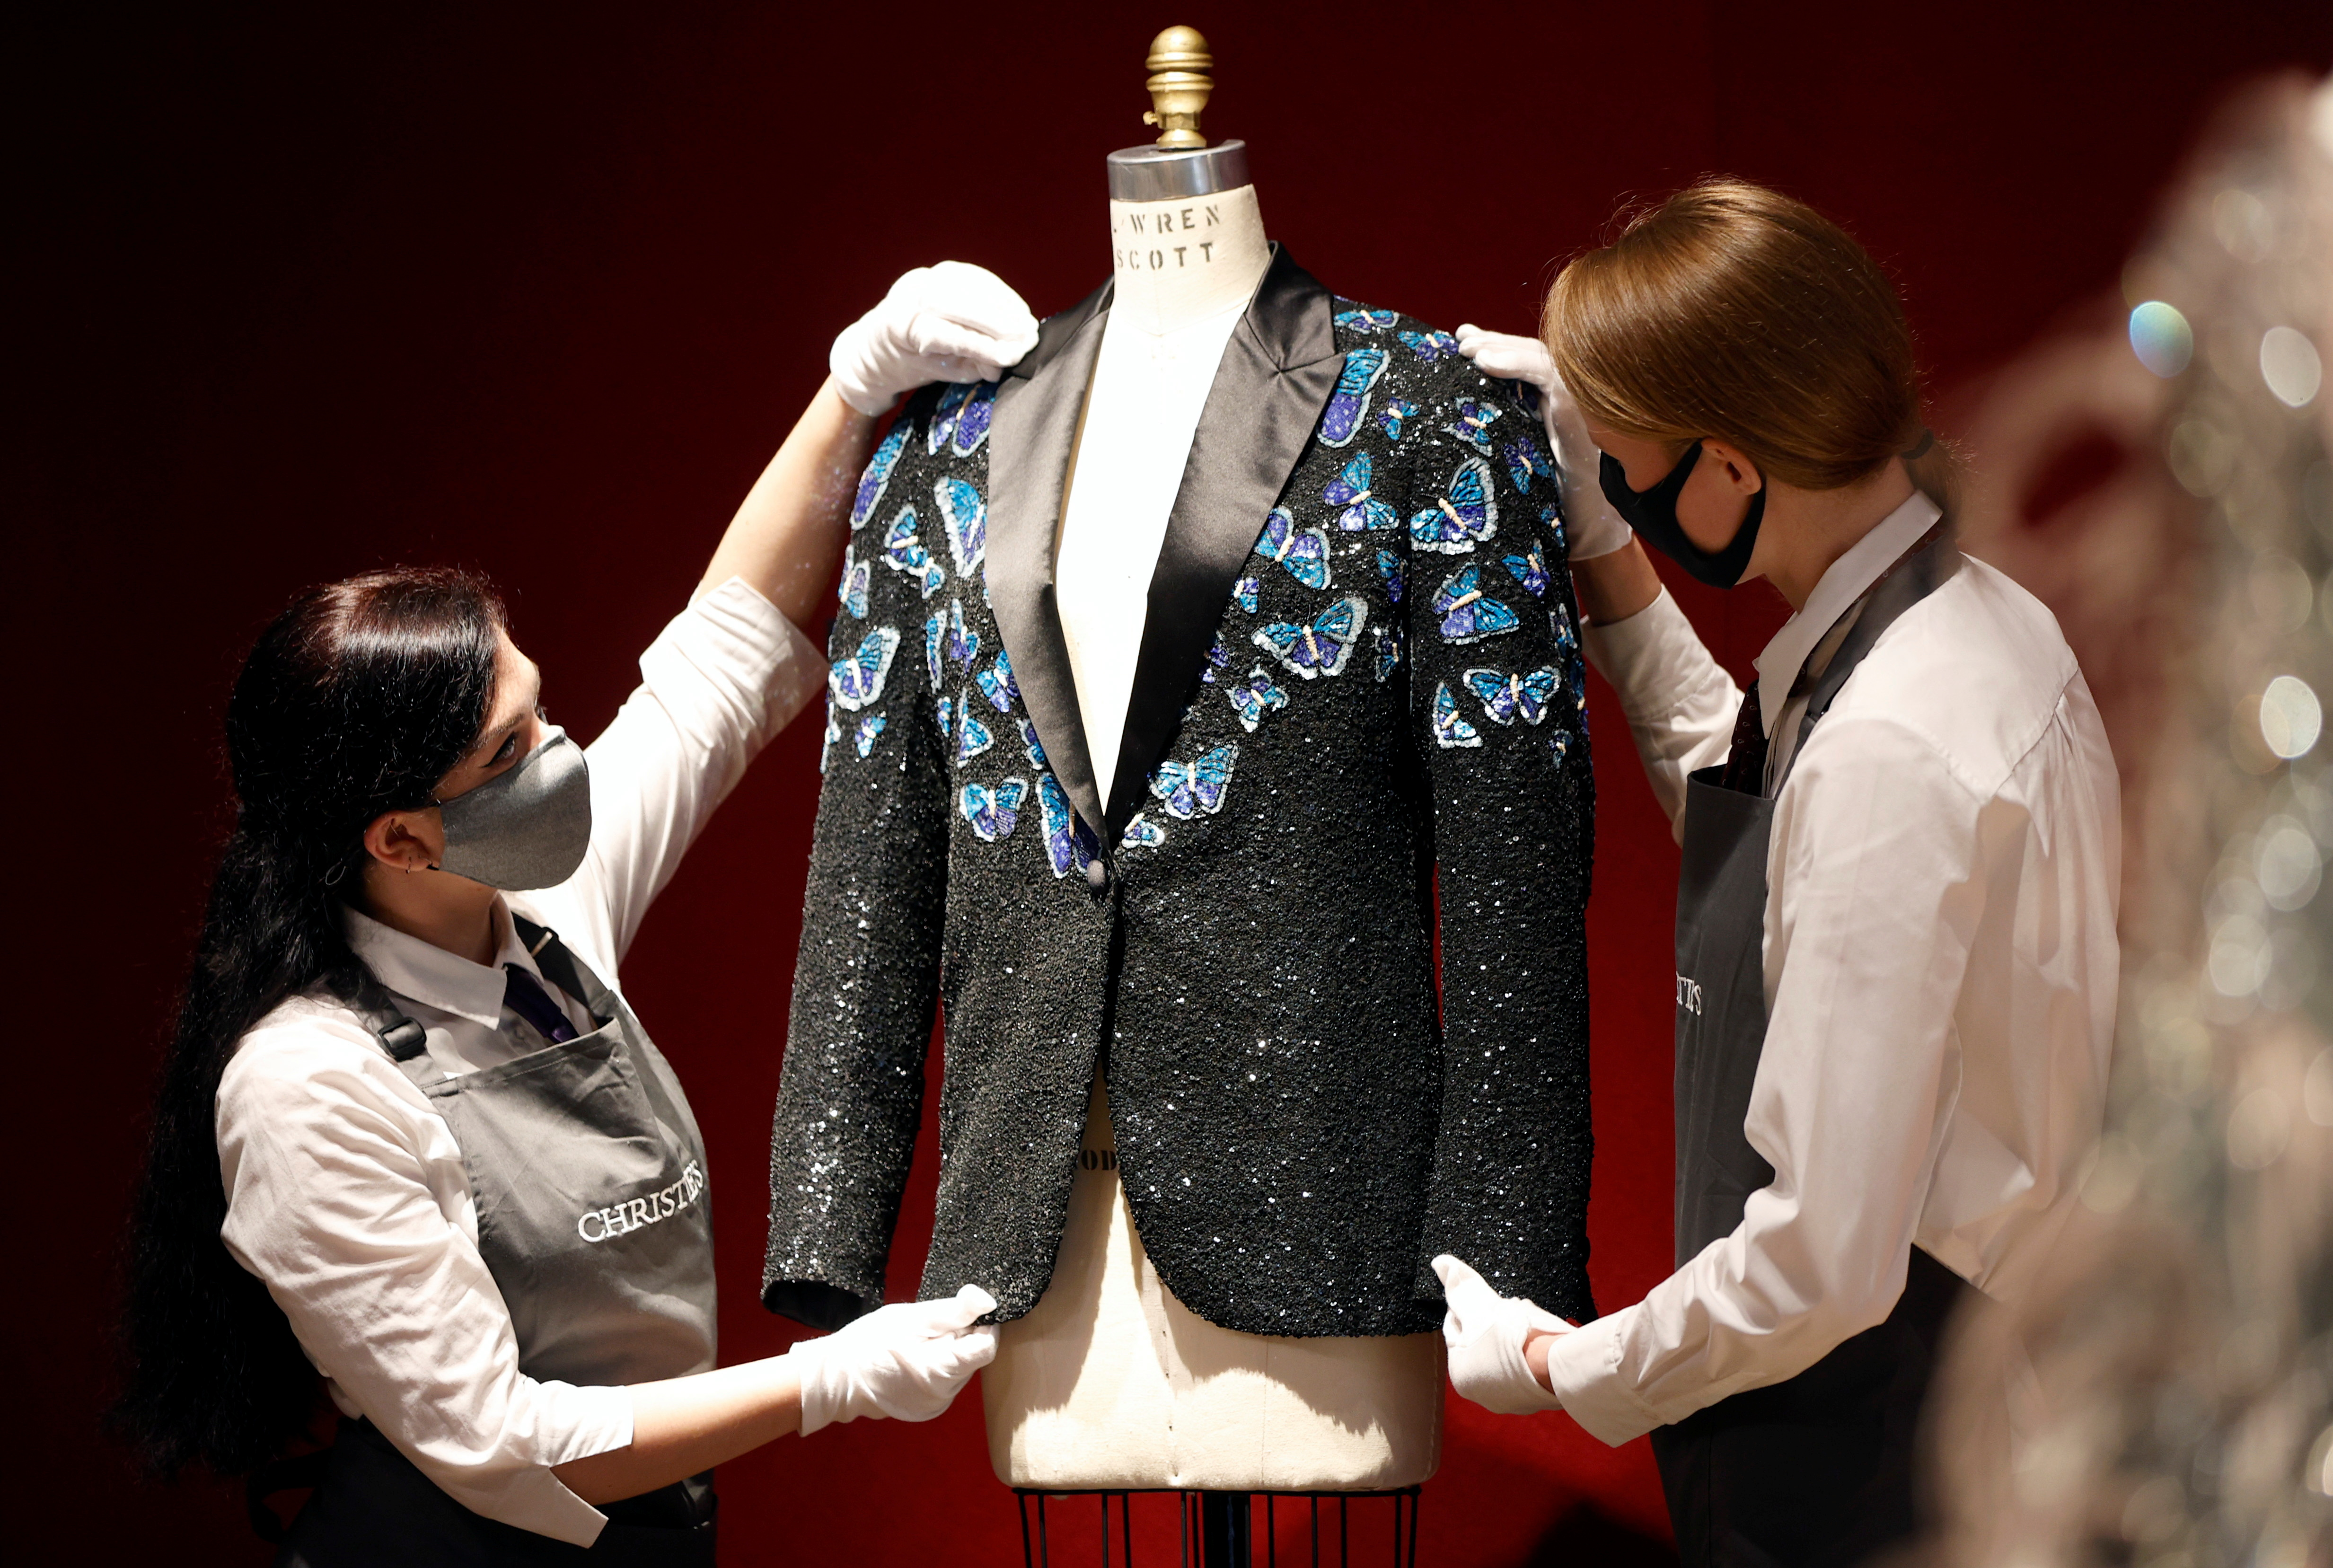 Gallery assistants pose for a photograph with the Butterfly jacket designed for Mick Jagger by designer L'Wren Scott at Christie's in London, Britain, June 10, 2021. REUTERS/John Sibley